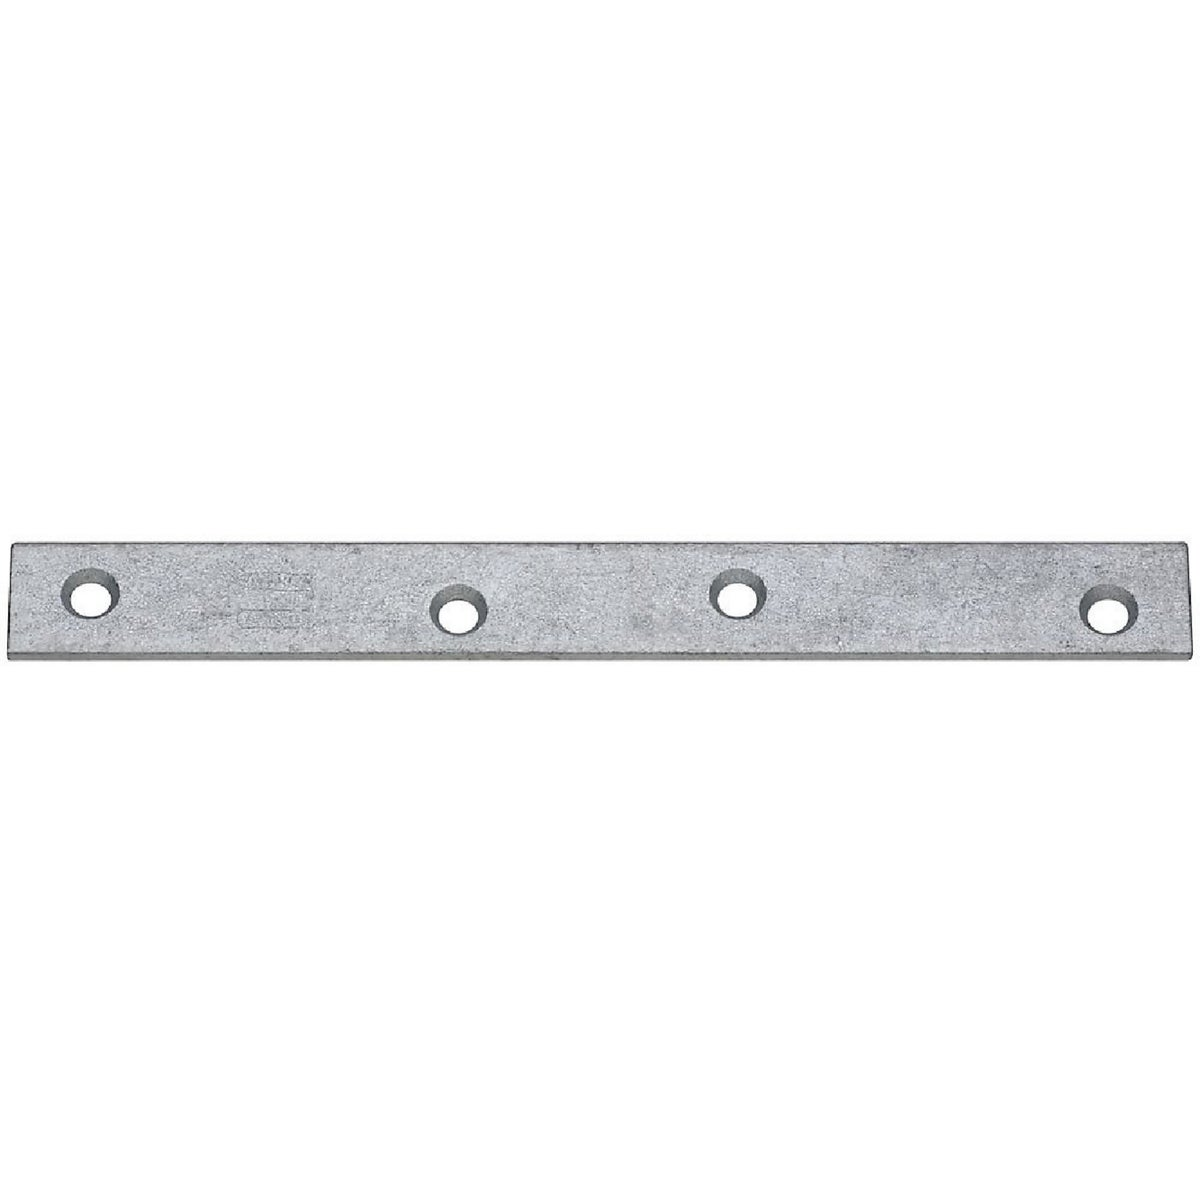 "8"" GALV MENDING BRACE - N220350 by National Mfg Co"